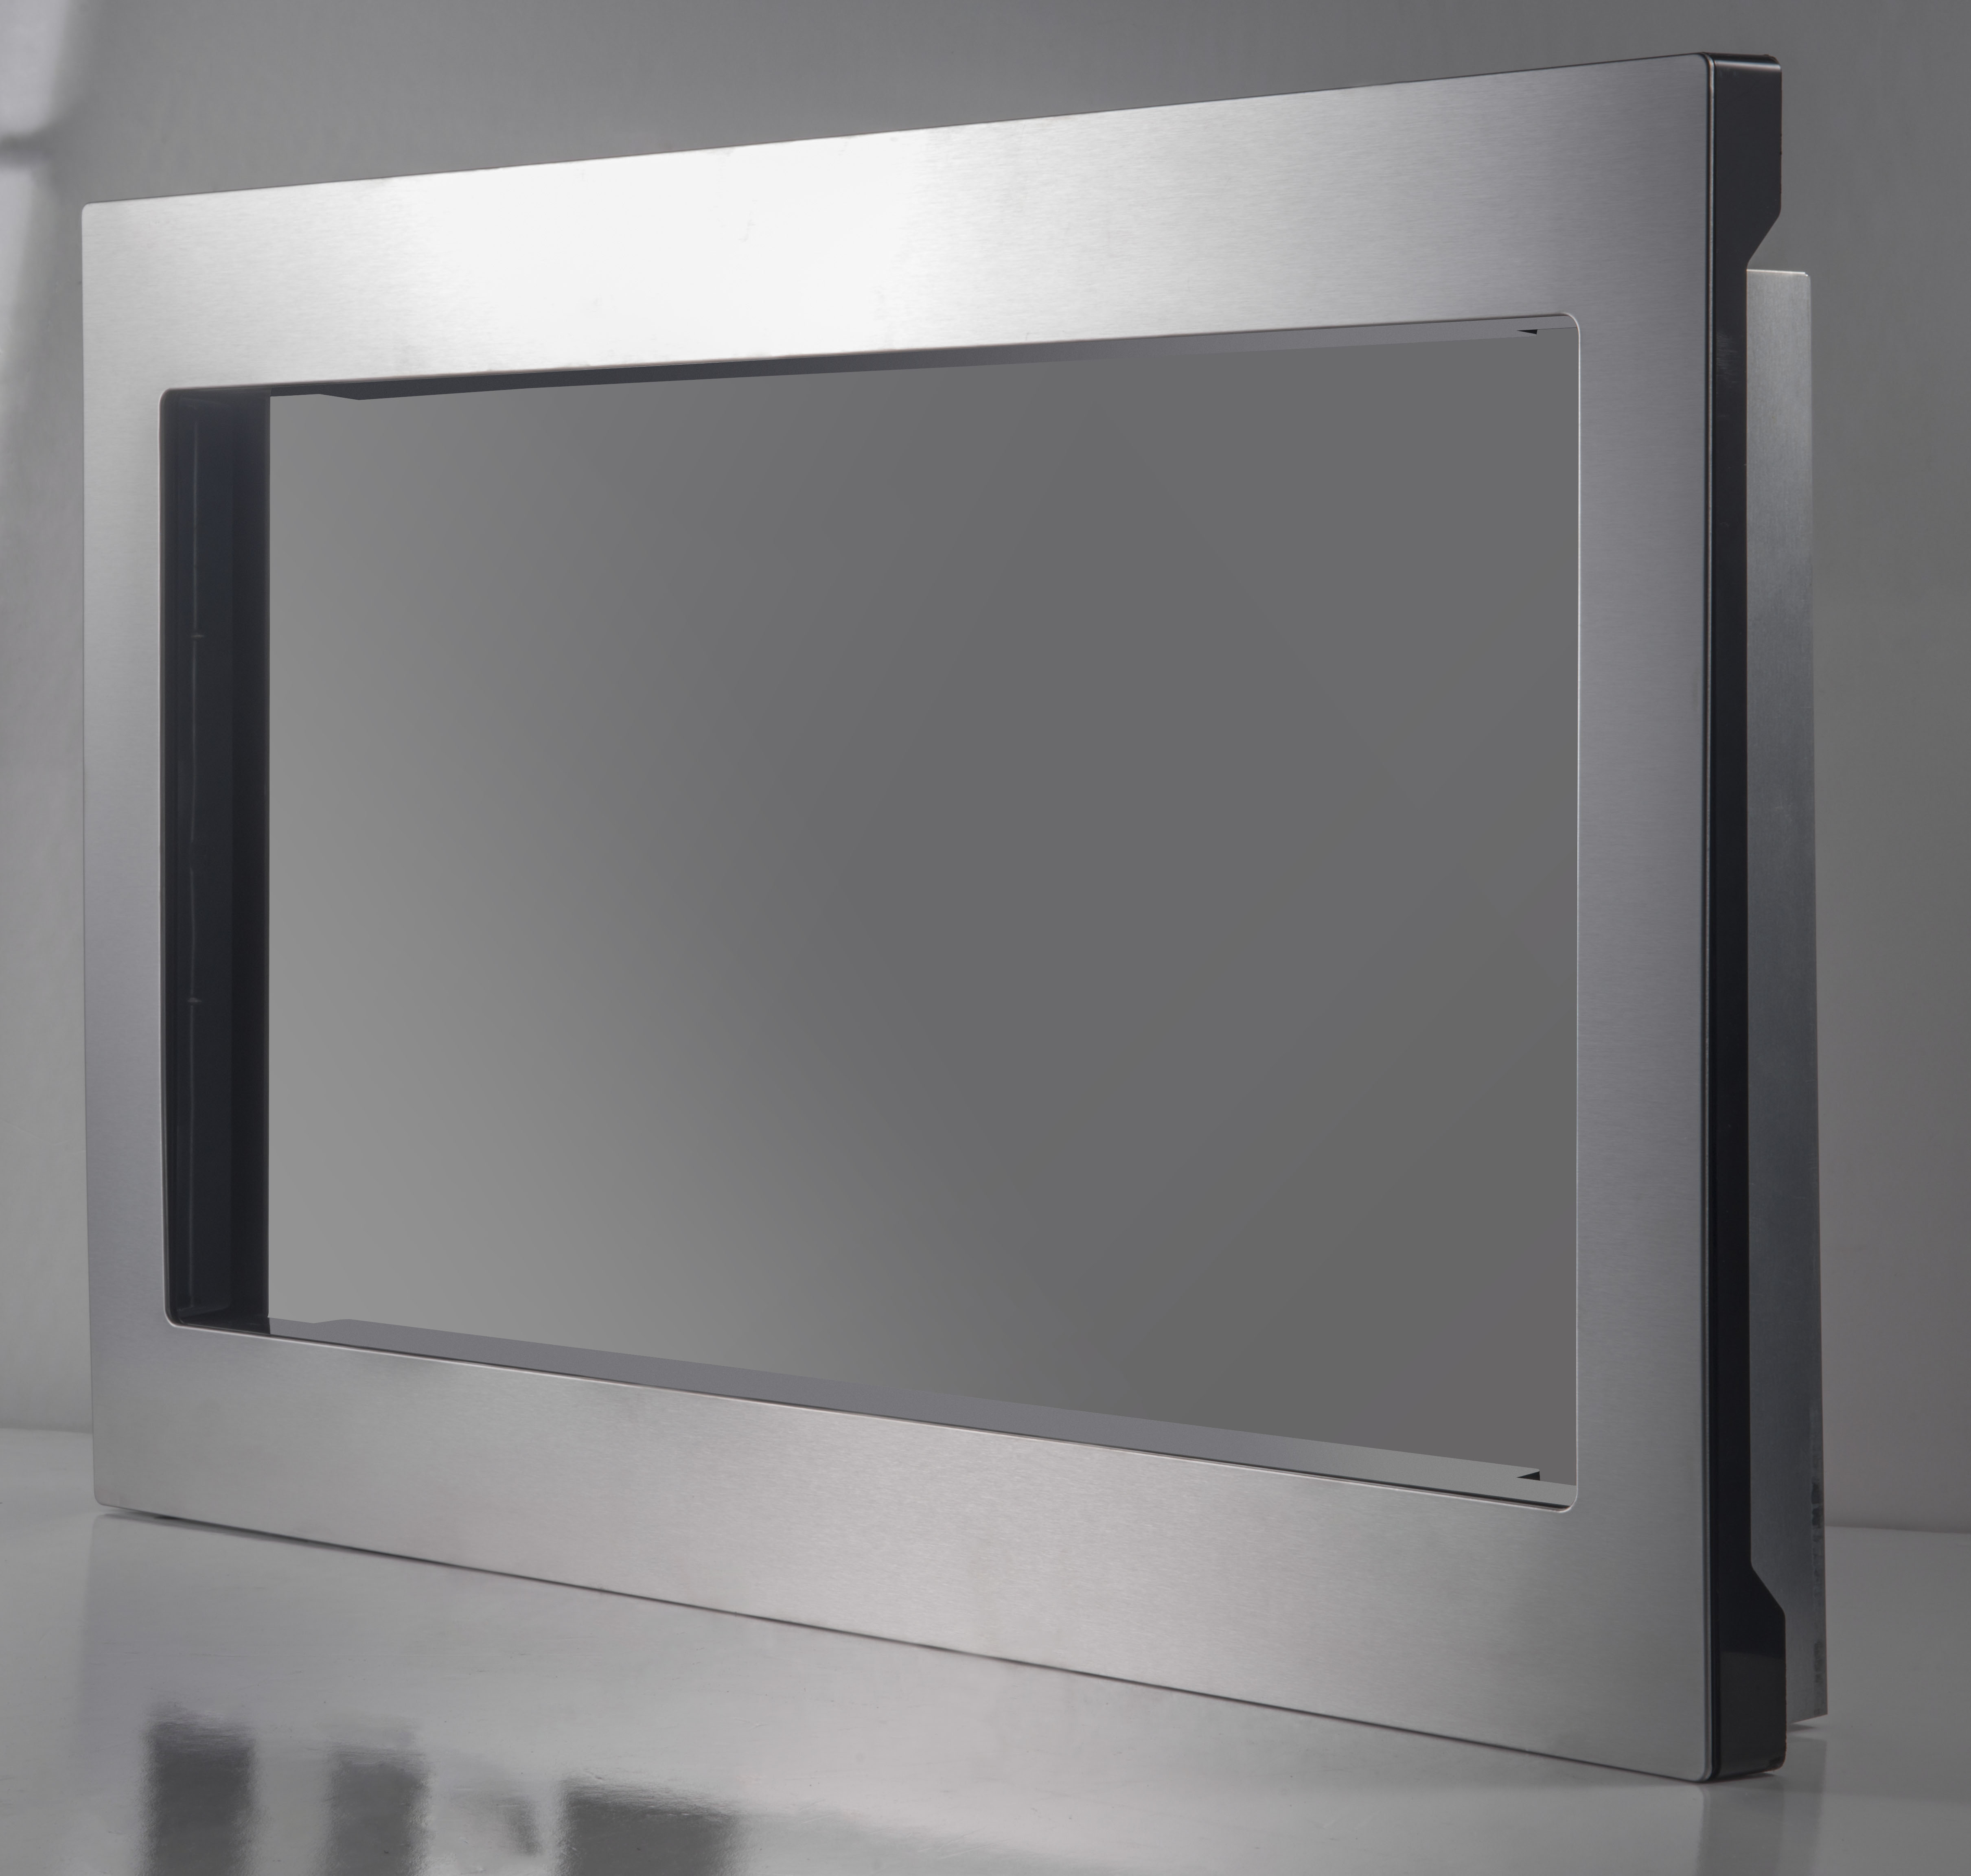 kenmore microwave parts accessories